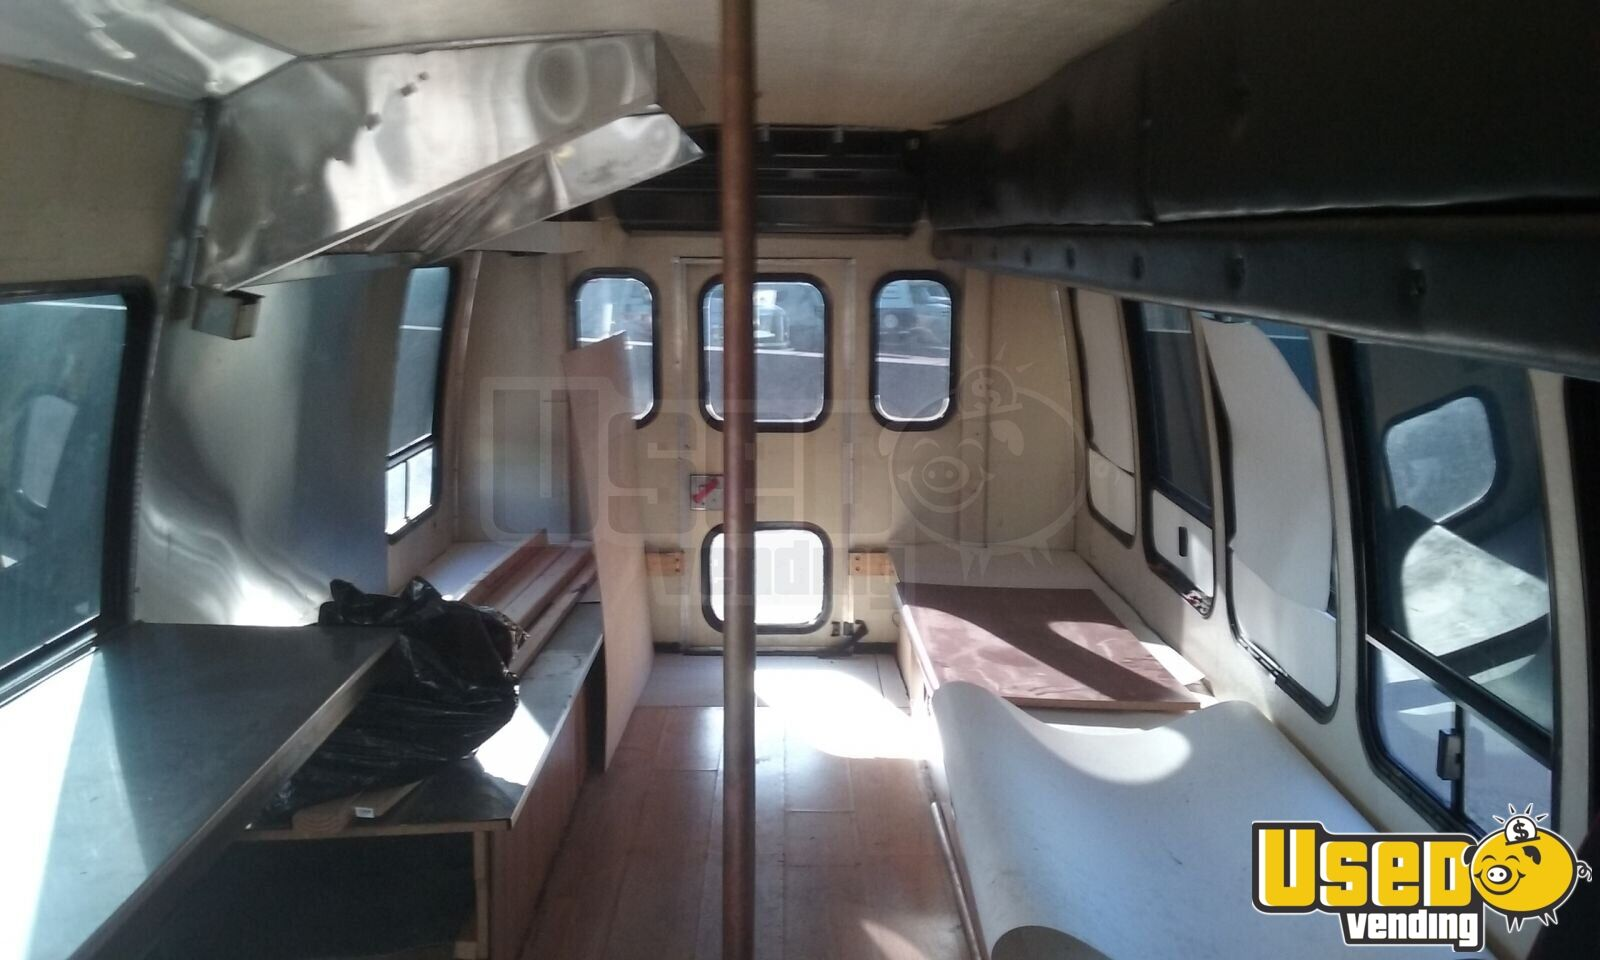 1995 Ford Econ Lt318 Food Truck Stainless Steel Wall Covers Arizona Diesel Engine for Sale - 5